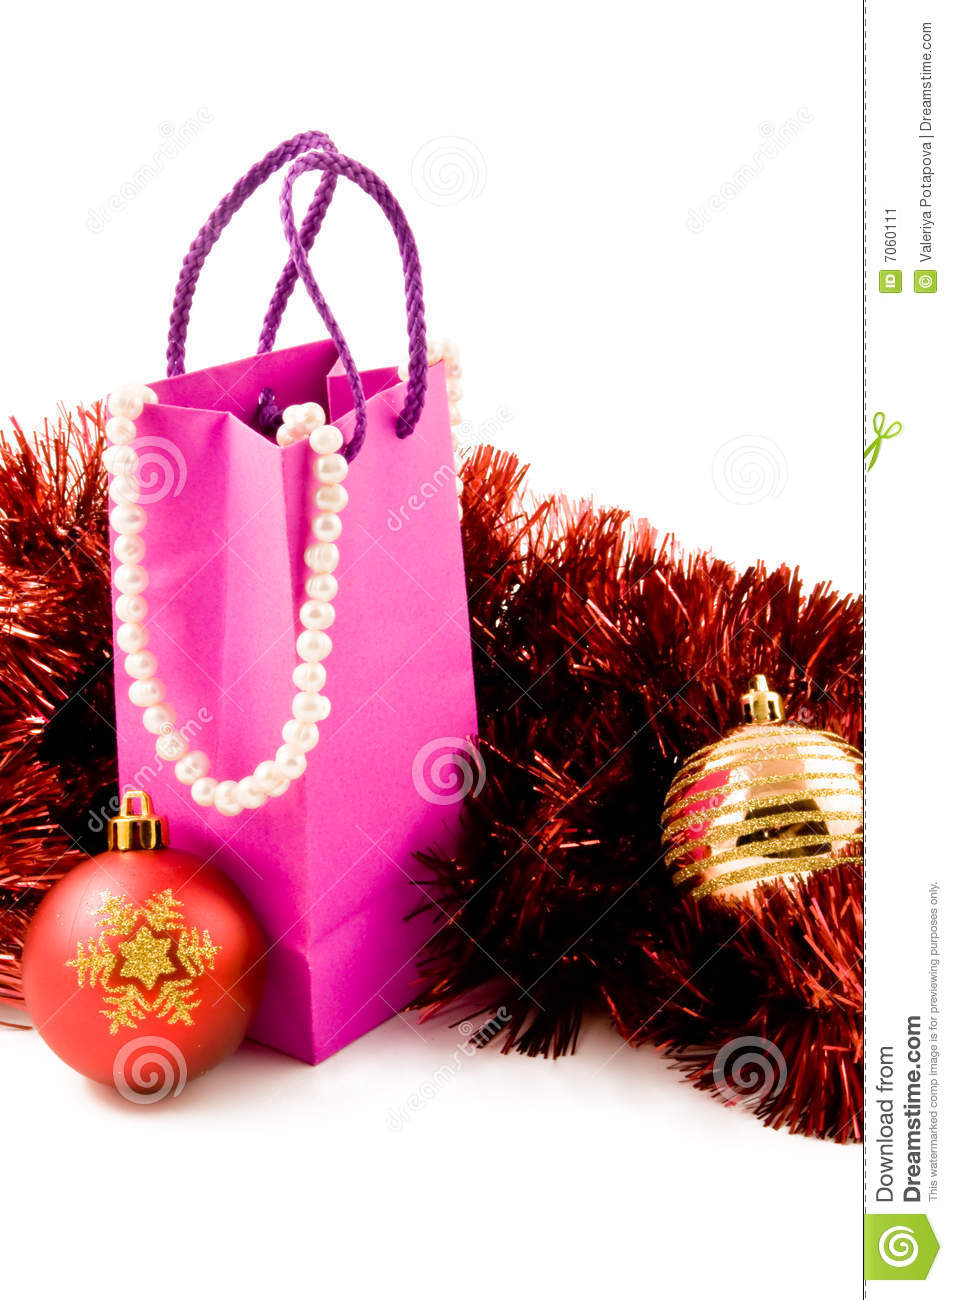 Christmas Presents Of Gifts For Woman Stock Image Image